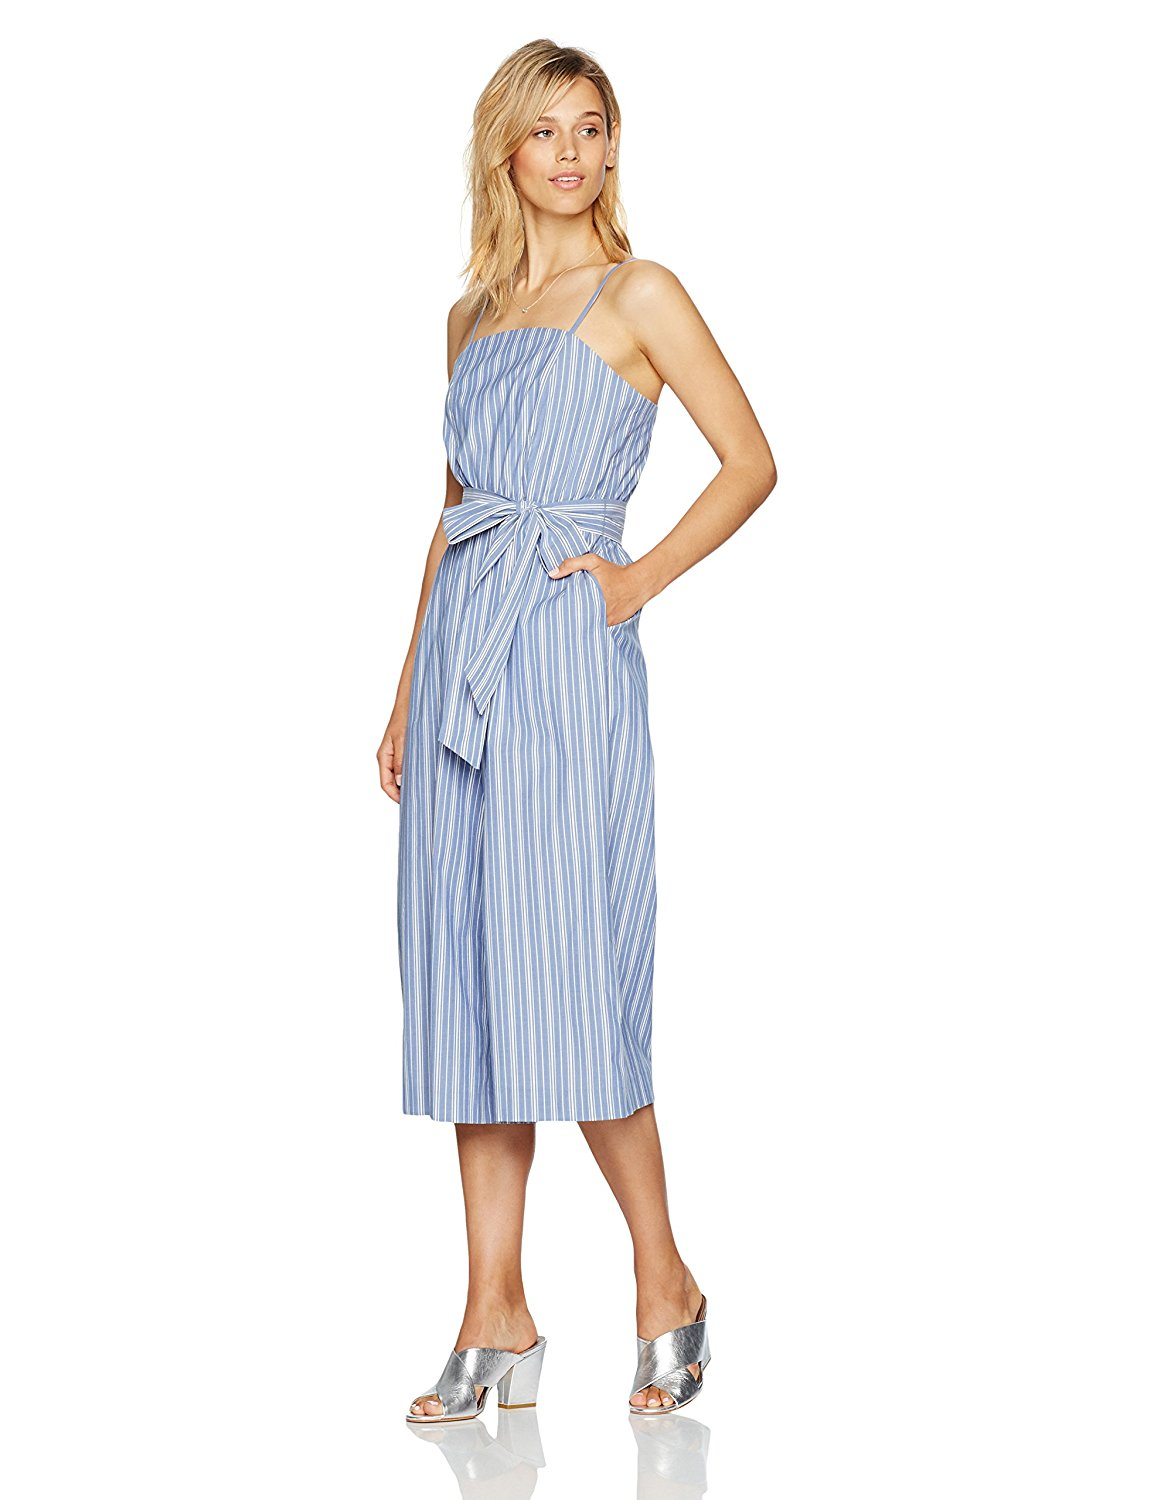 9bb7be4da106 Amazon.com: PARIS SUNDAY Women's Jumpsuit with Tie Detail ...